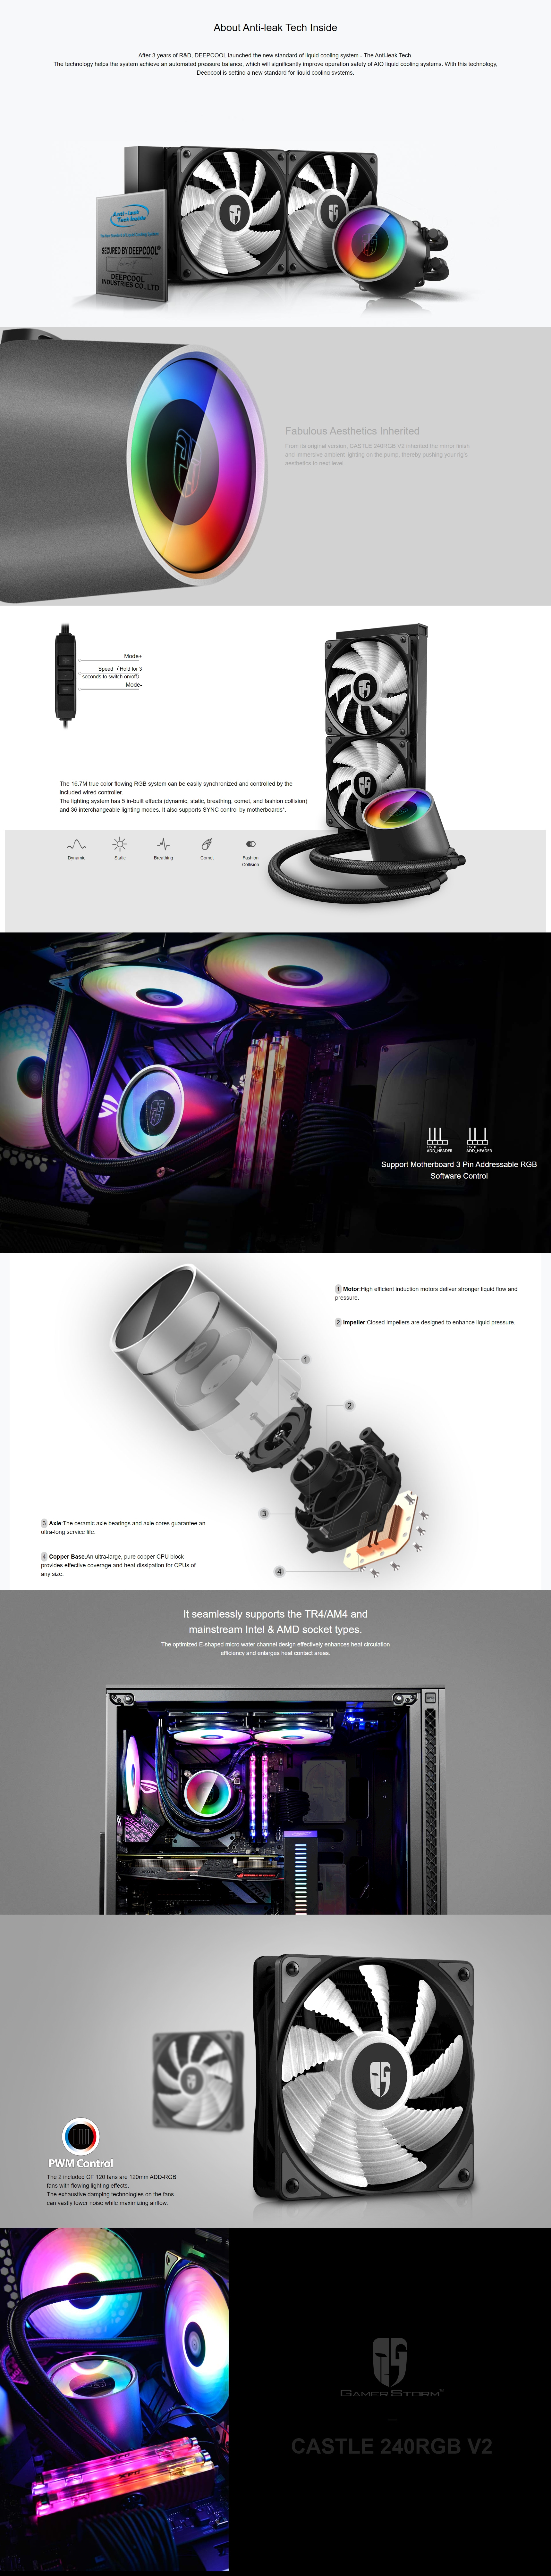 A large marketing image providing additional information about the product Deepcool CASTLE 240RGB V2 AIO Liquid CPU Coolers - Additional alt info not provided